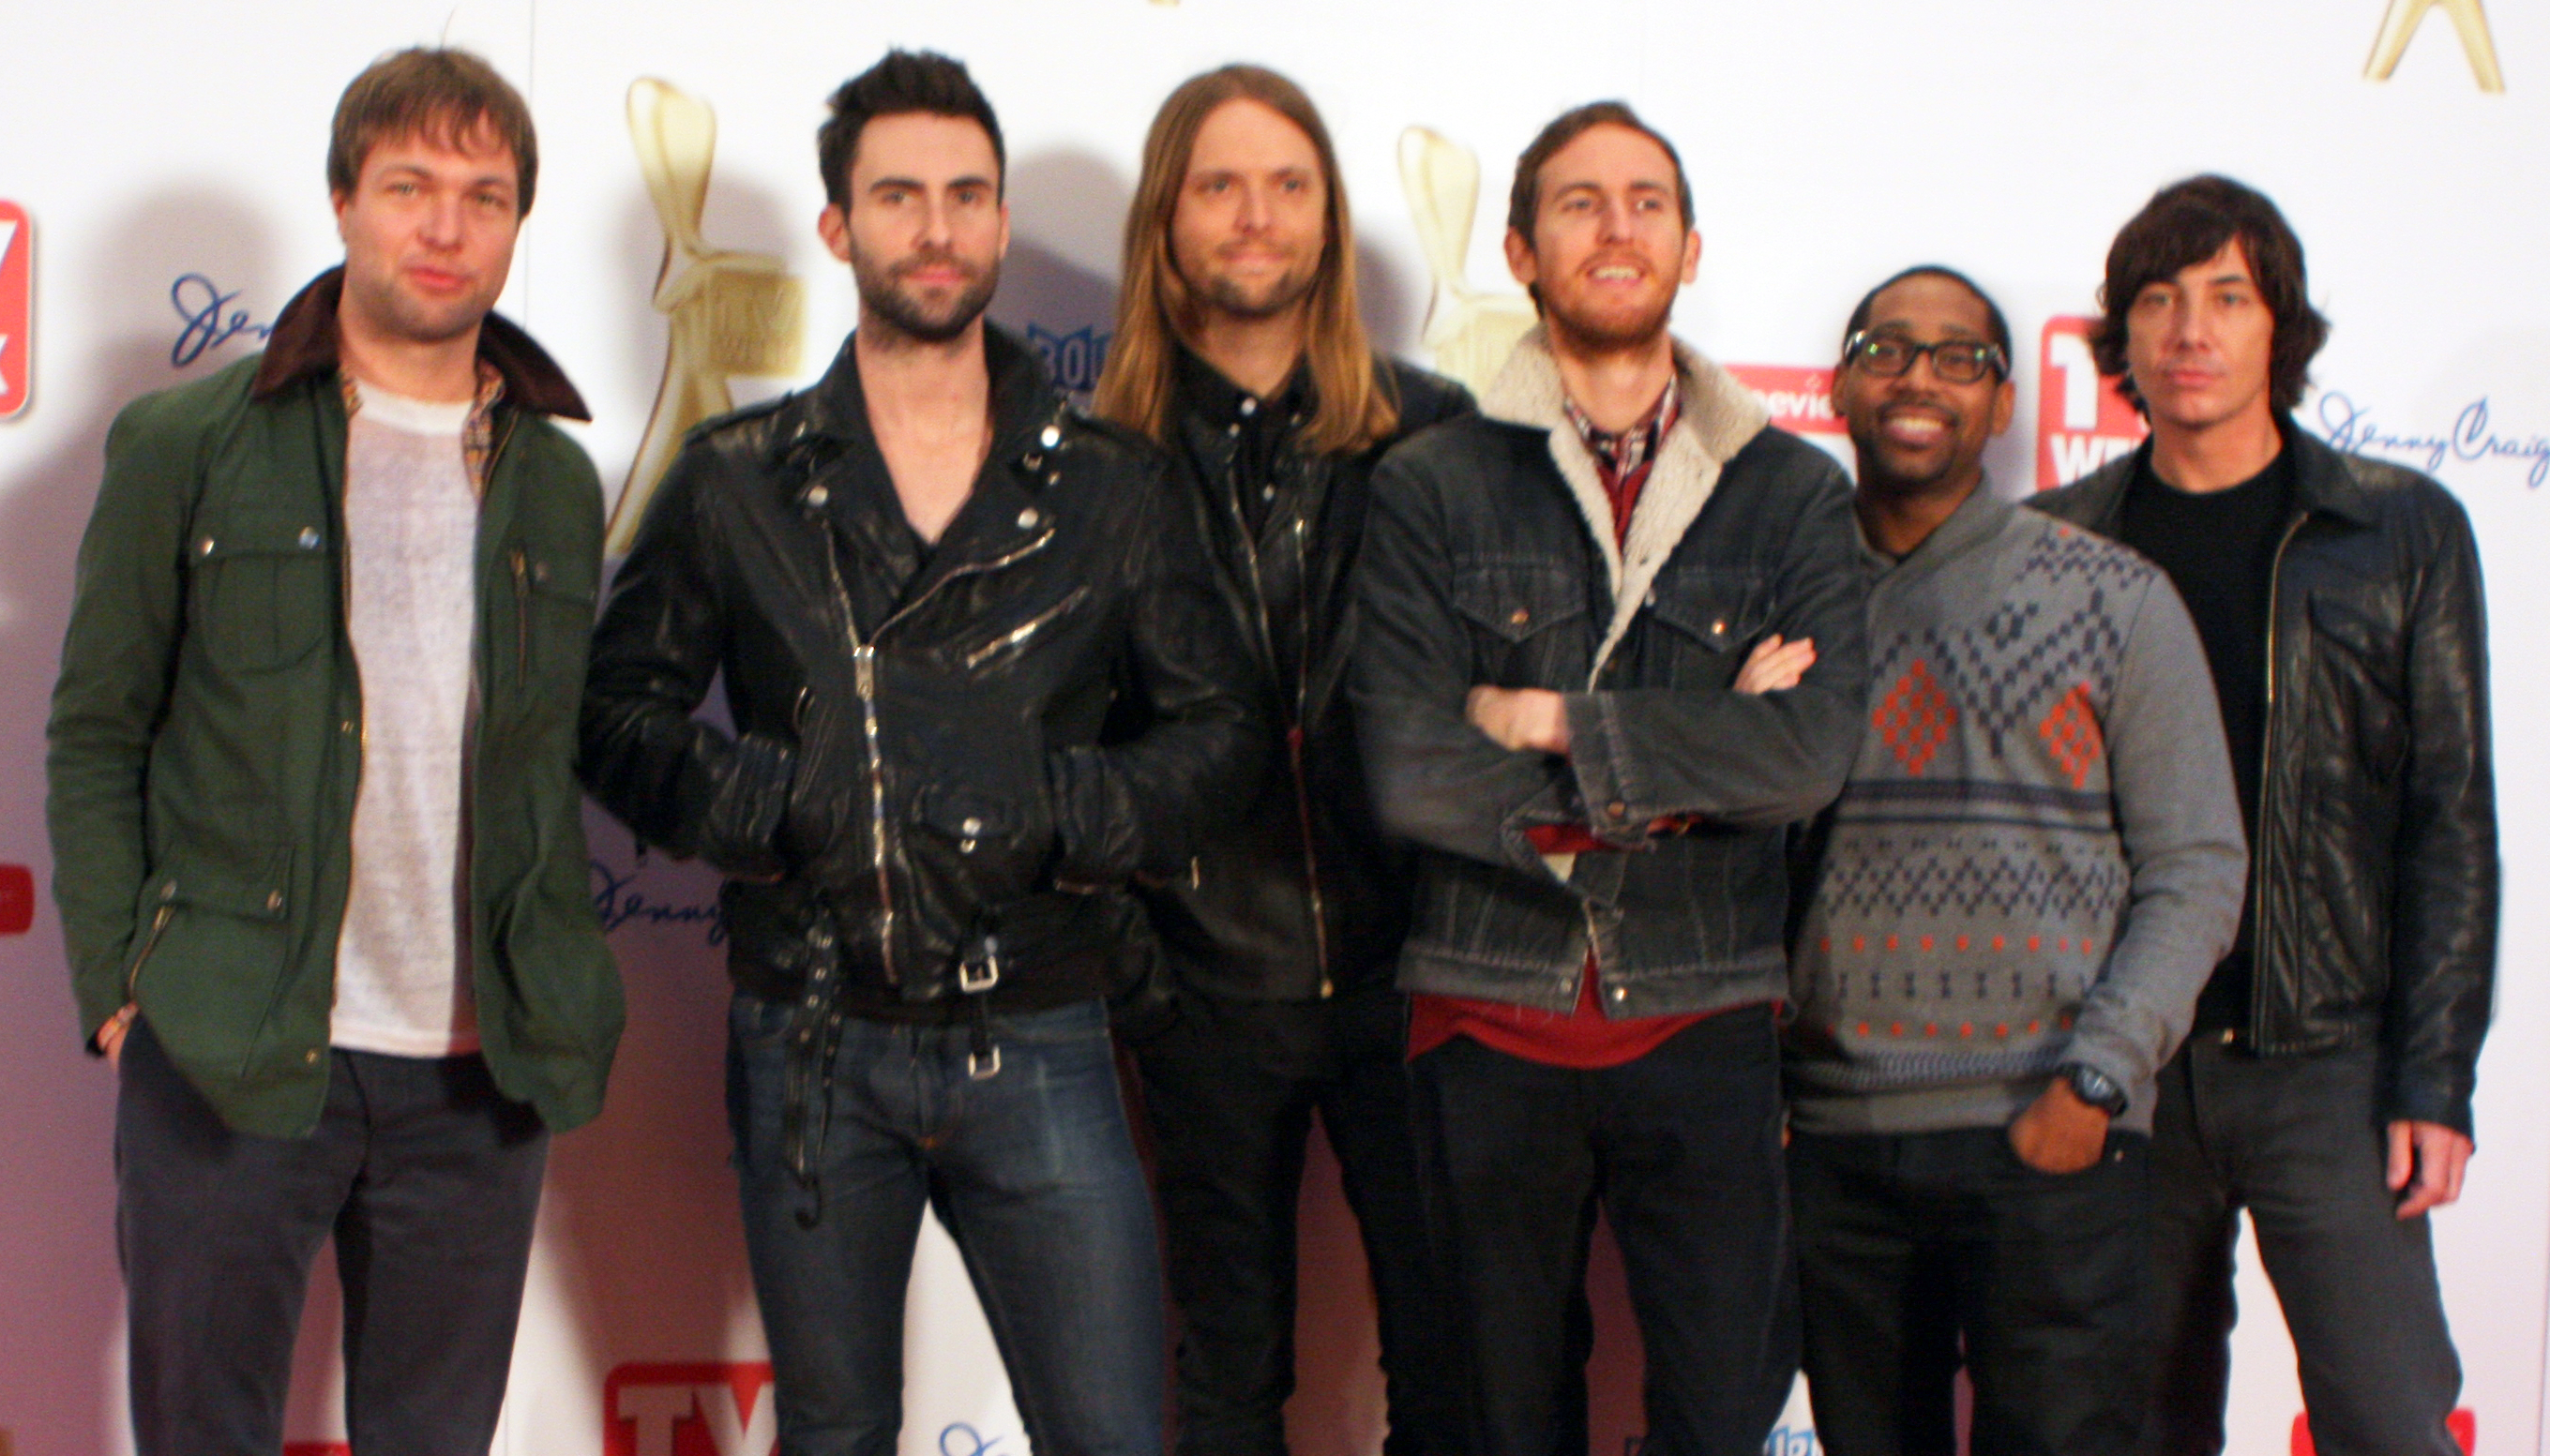 Maroon 5 - Wikipedia, the free encyclopedia